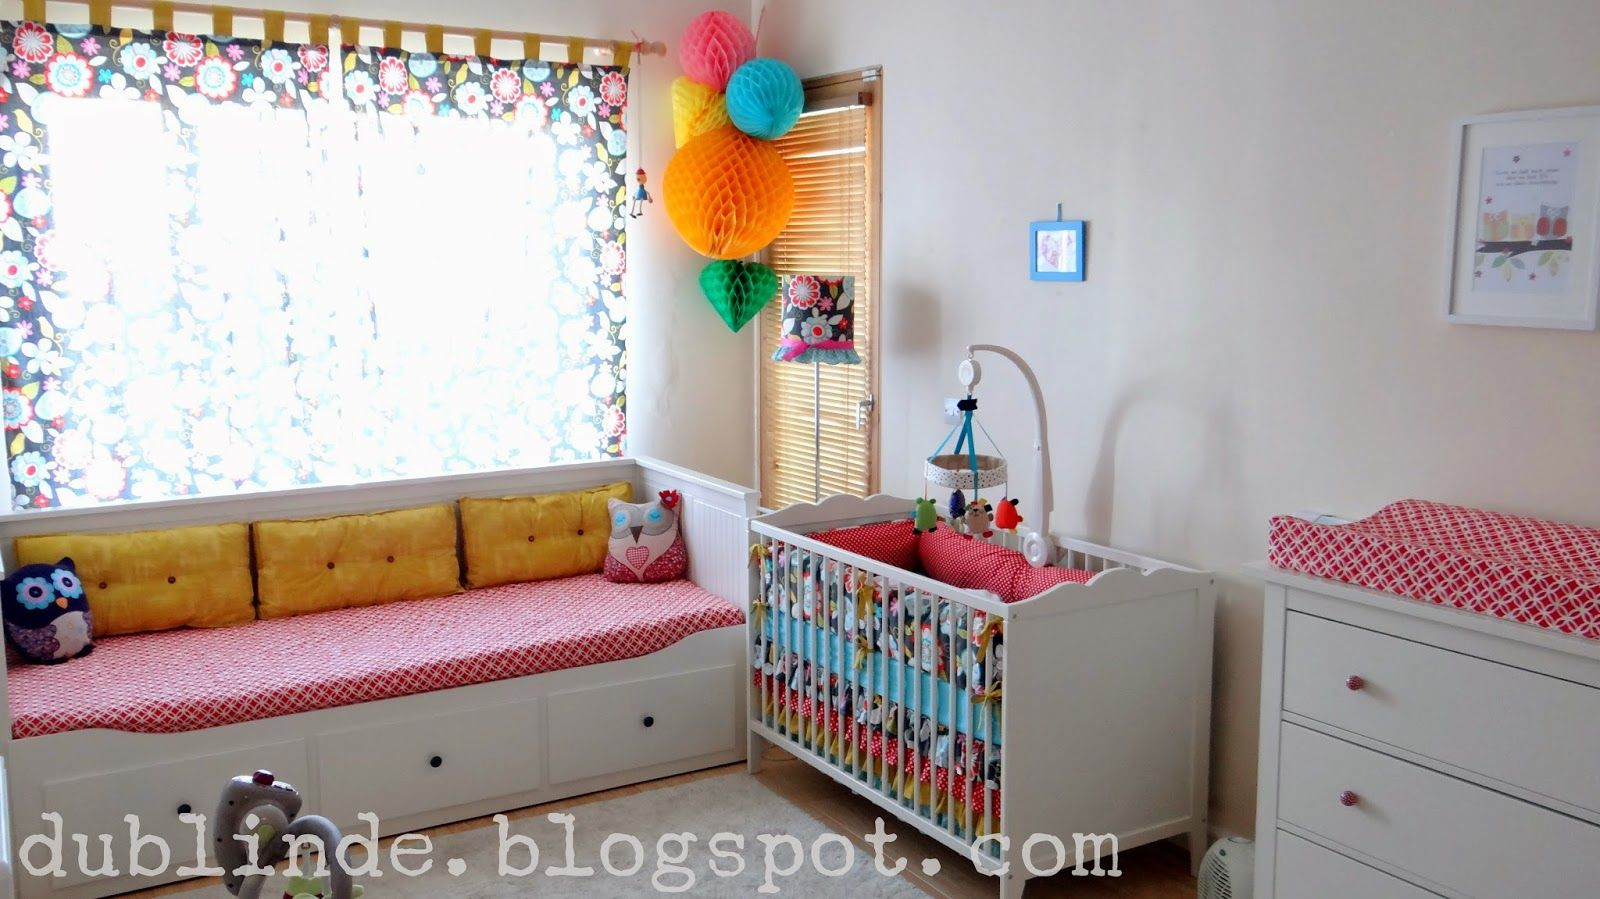 ikea hemnes daybed nursery kinderzimmer kinder zimmer ve hemnes tagesbett. Black Bedroom Furniture Sets. Home Design Ideas